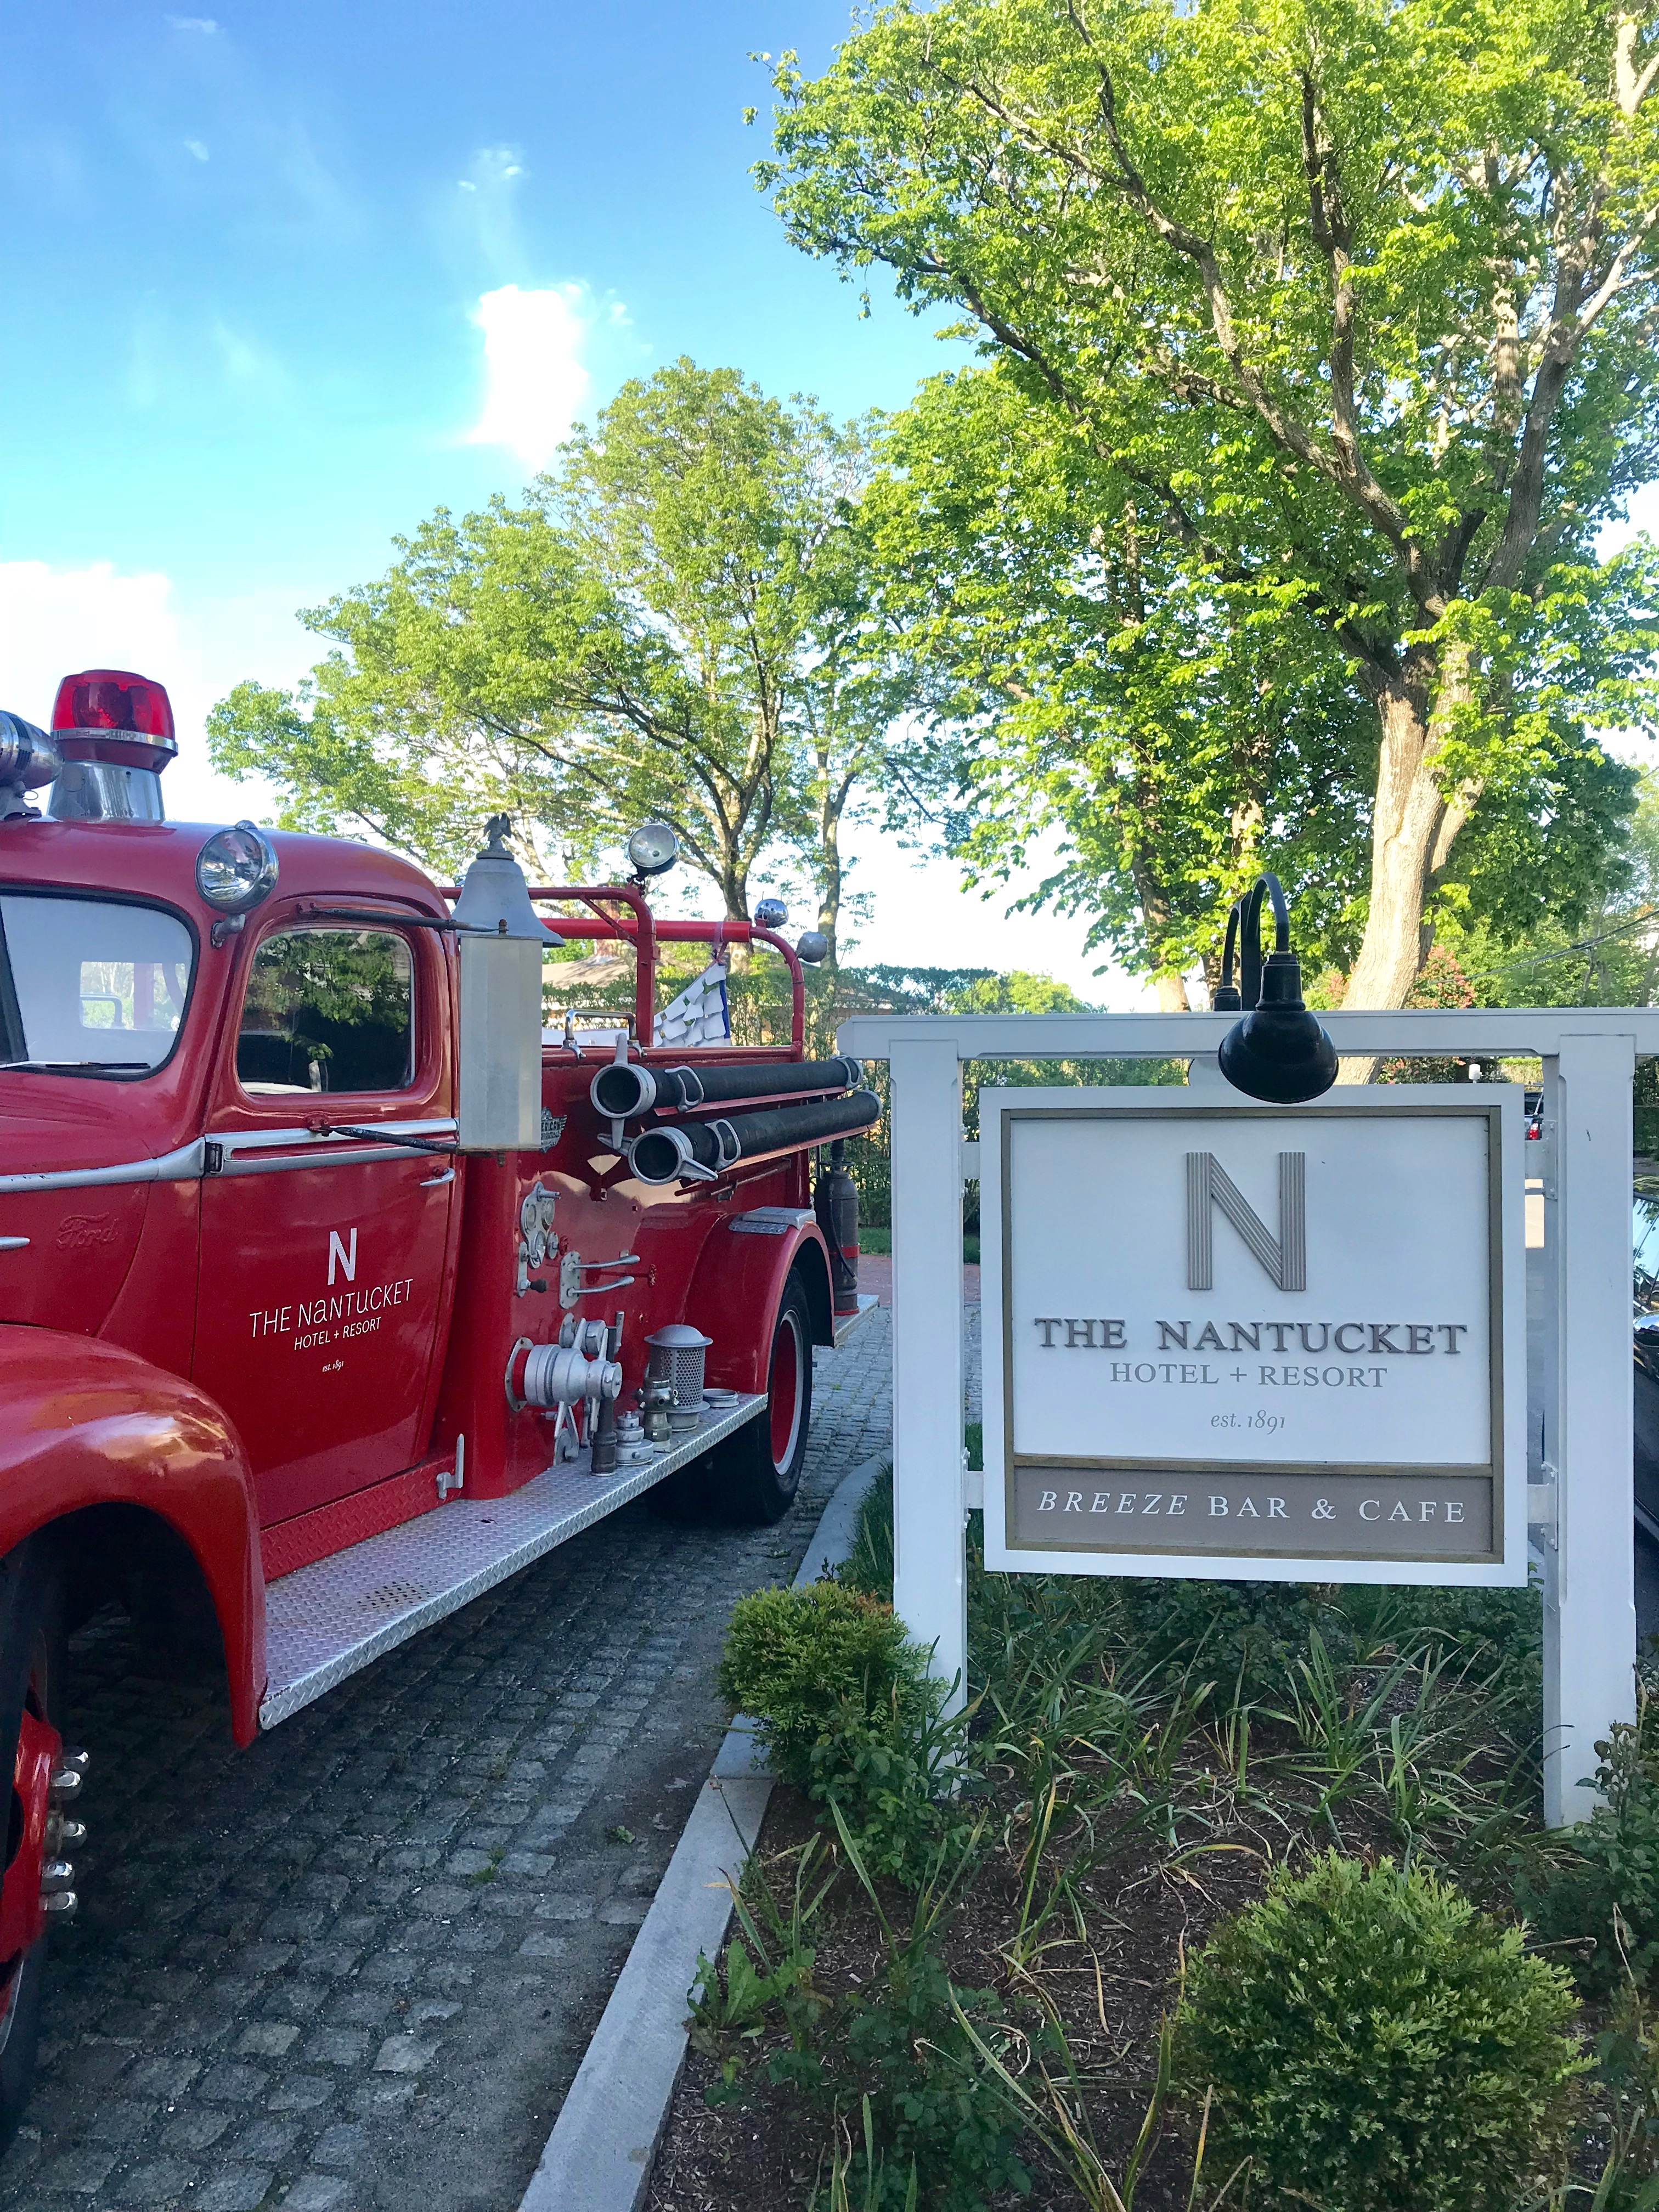 The Nantucket Hotel Was Built In 1891 And Renovated 2017 By Mark Gwenn Snider Who Also Own Winnetu Katama Angela Prout